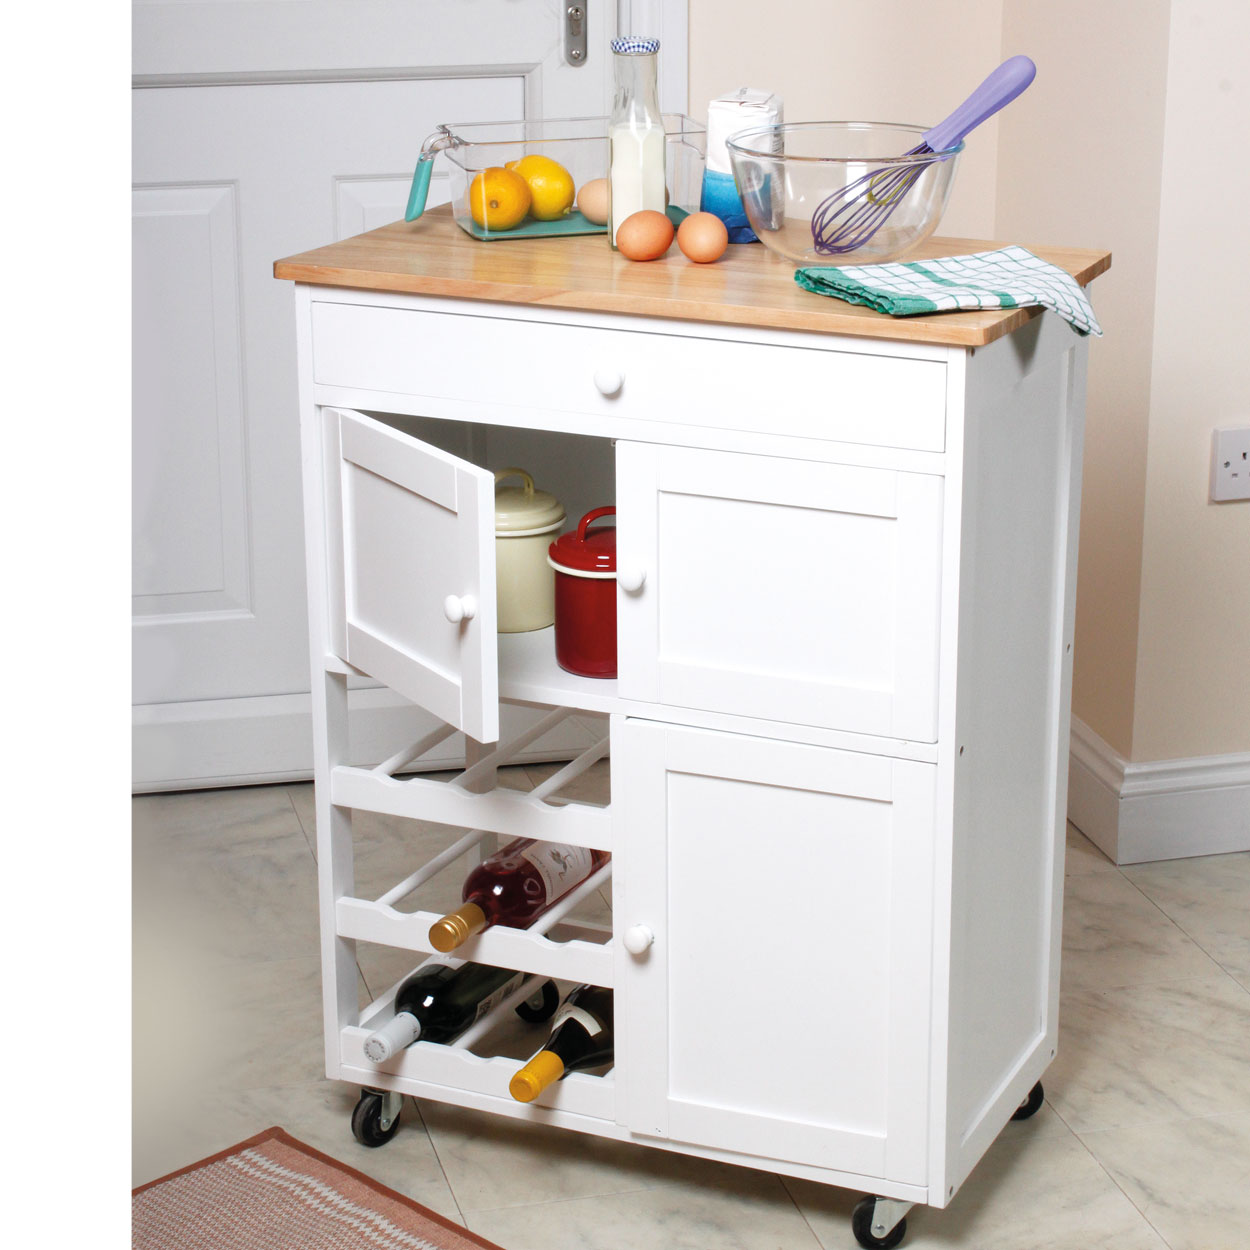 Kitchen trolley home design ideas and pictures for Kitchen trolley designs for small kitchens